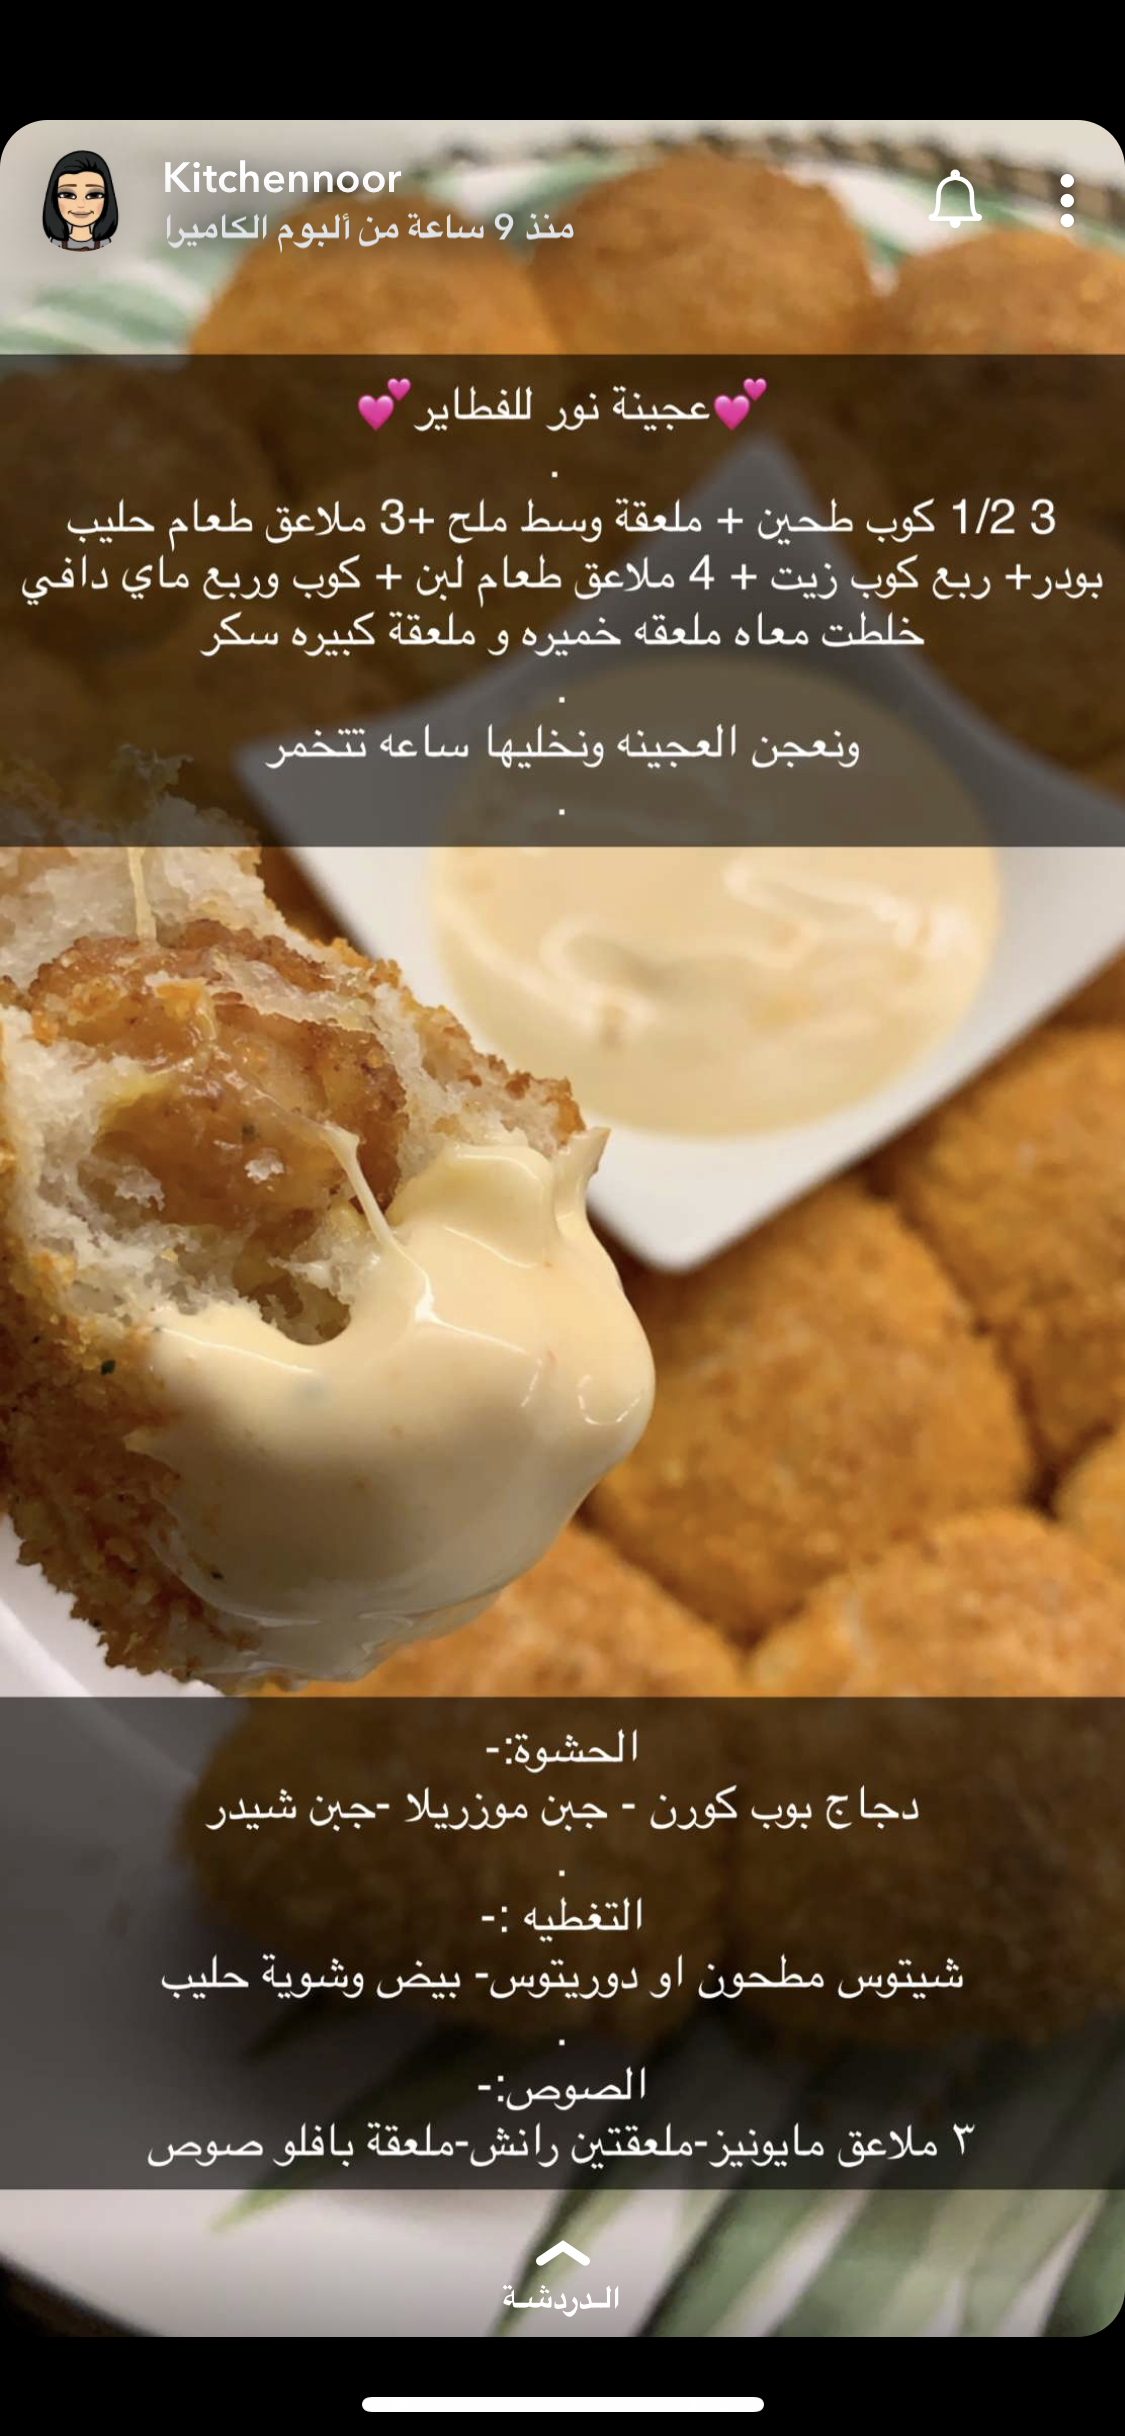 Pin By Bnt Almalki On اطباق سهلة وسريعة للمناسبات Food Sweets Desserts Cooking Recipes